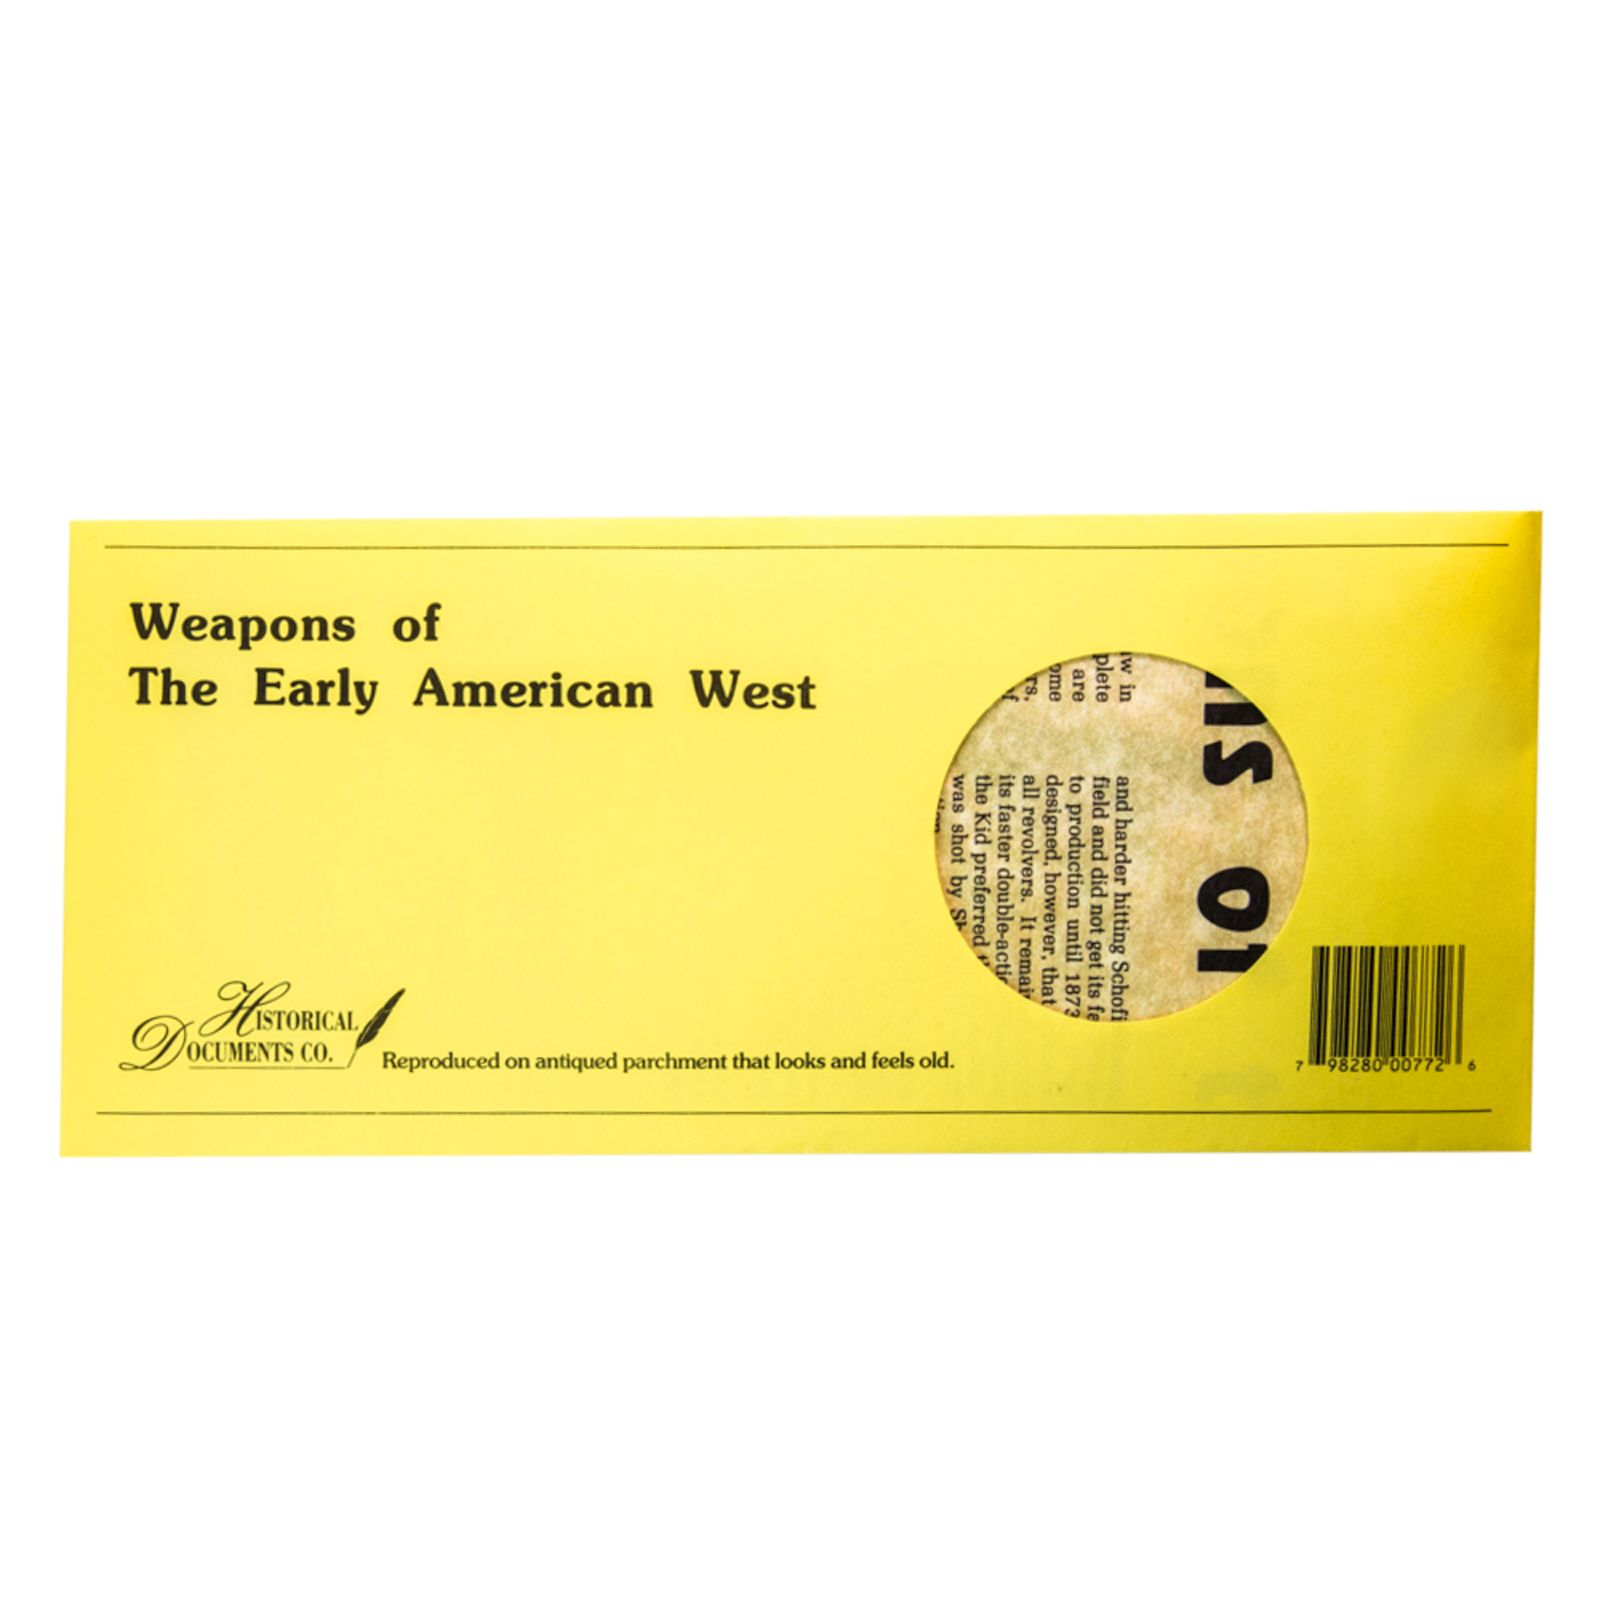 Weapons of the Early American West